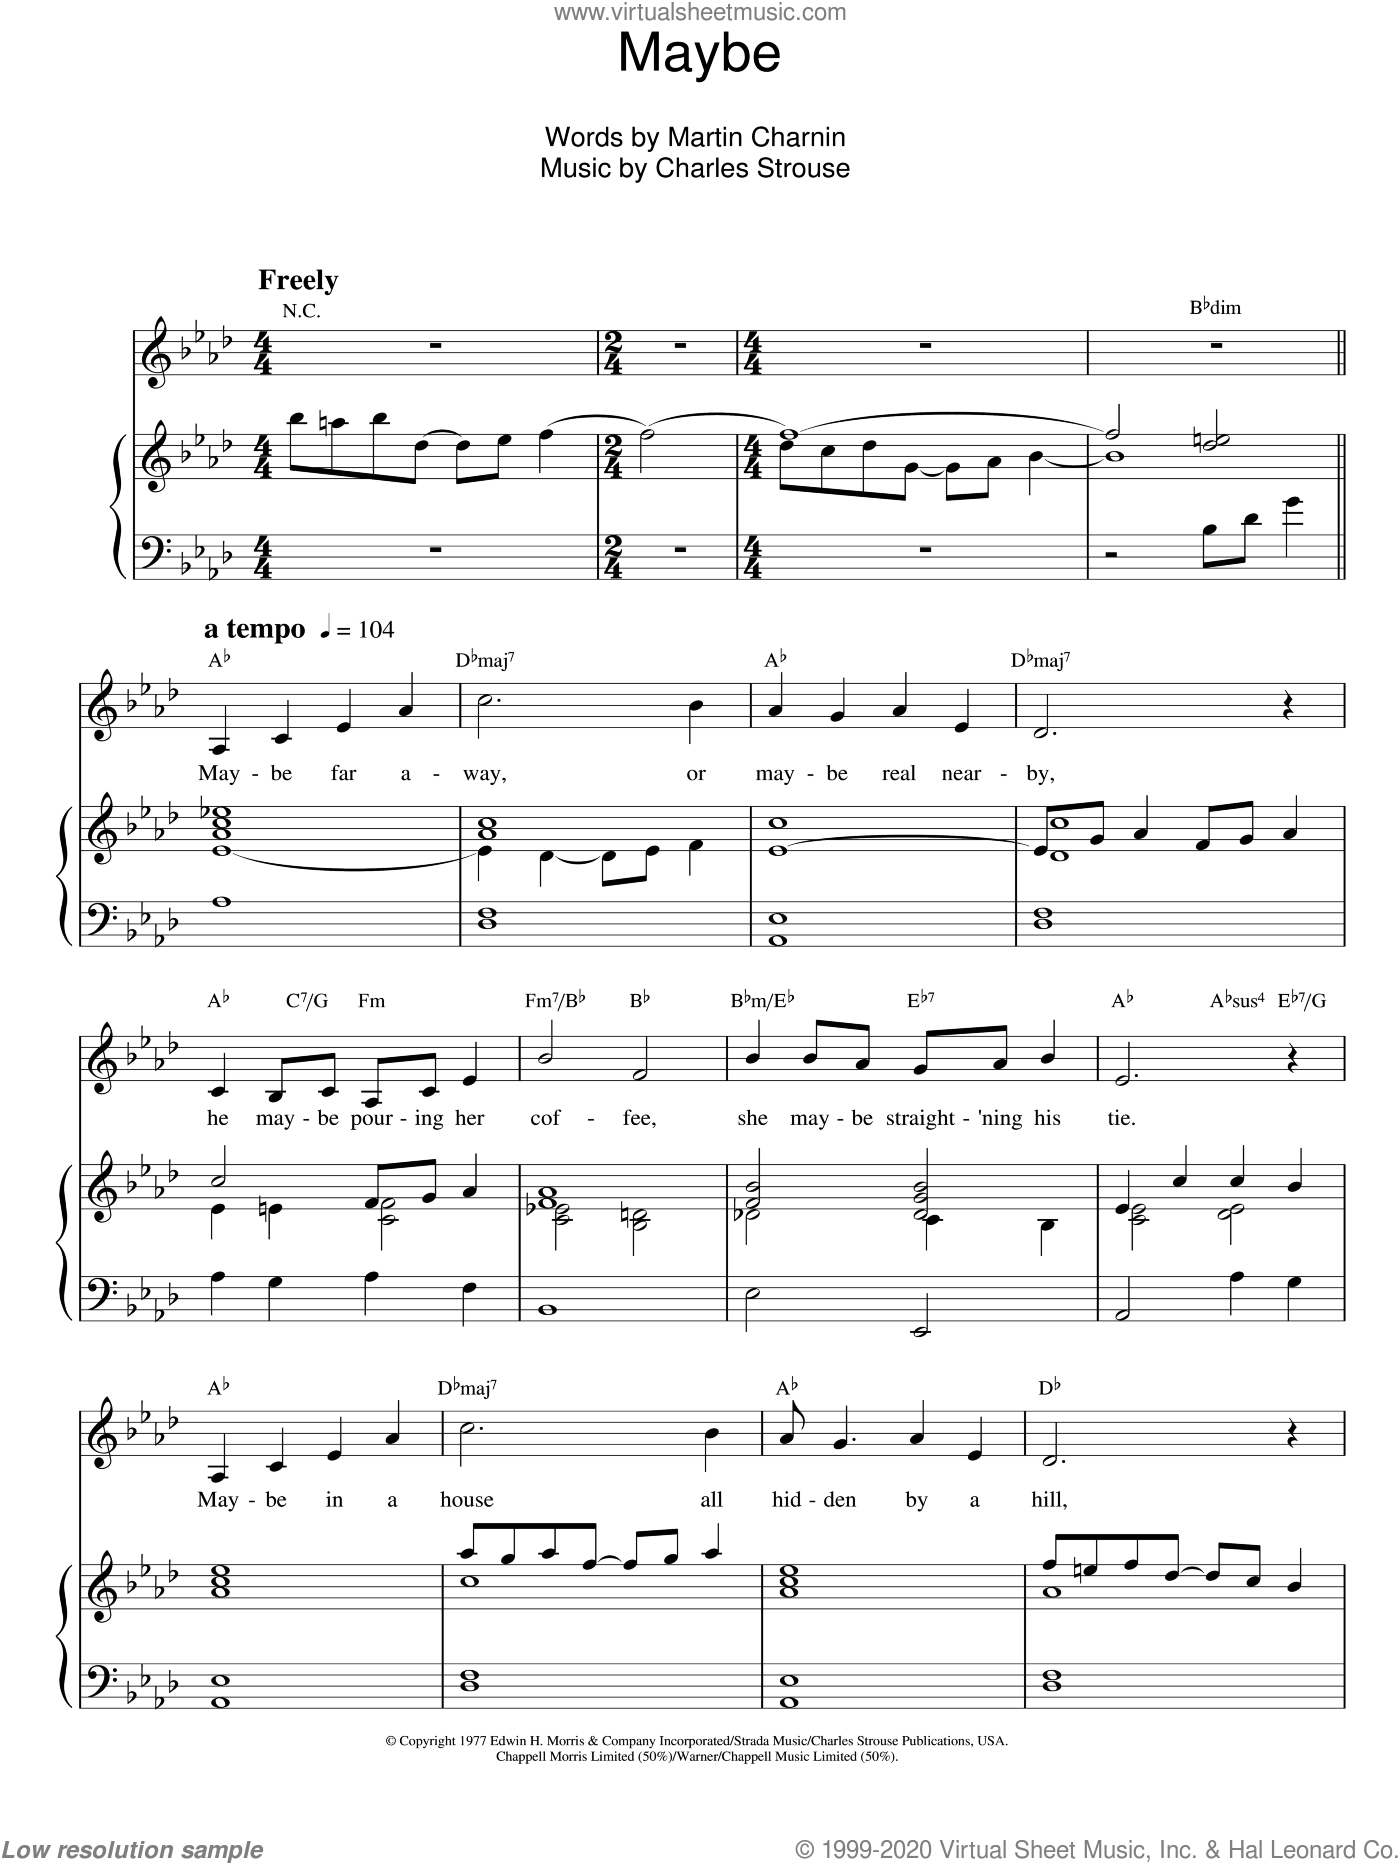 Maybe sheet music for voice and piano by Martin Charnin